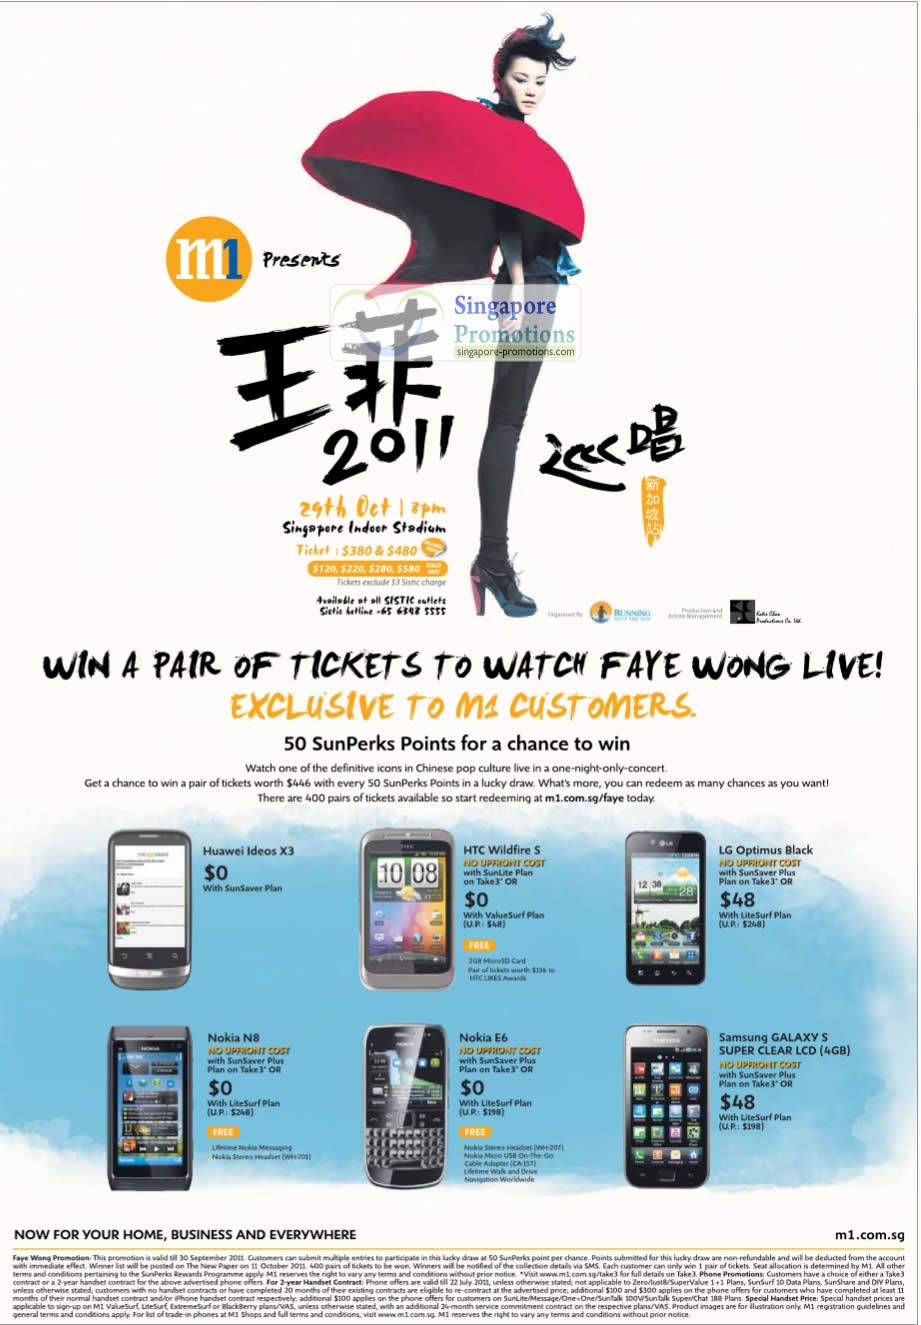 Faye Wong Tickets, Huawei Ideos X3, HTC Wildfire S, LG Optimus Black, Nokia N8, Nokia E6, Samsung Galaxy S SUPER CLEAR LCD